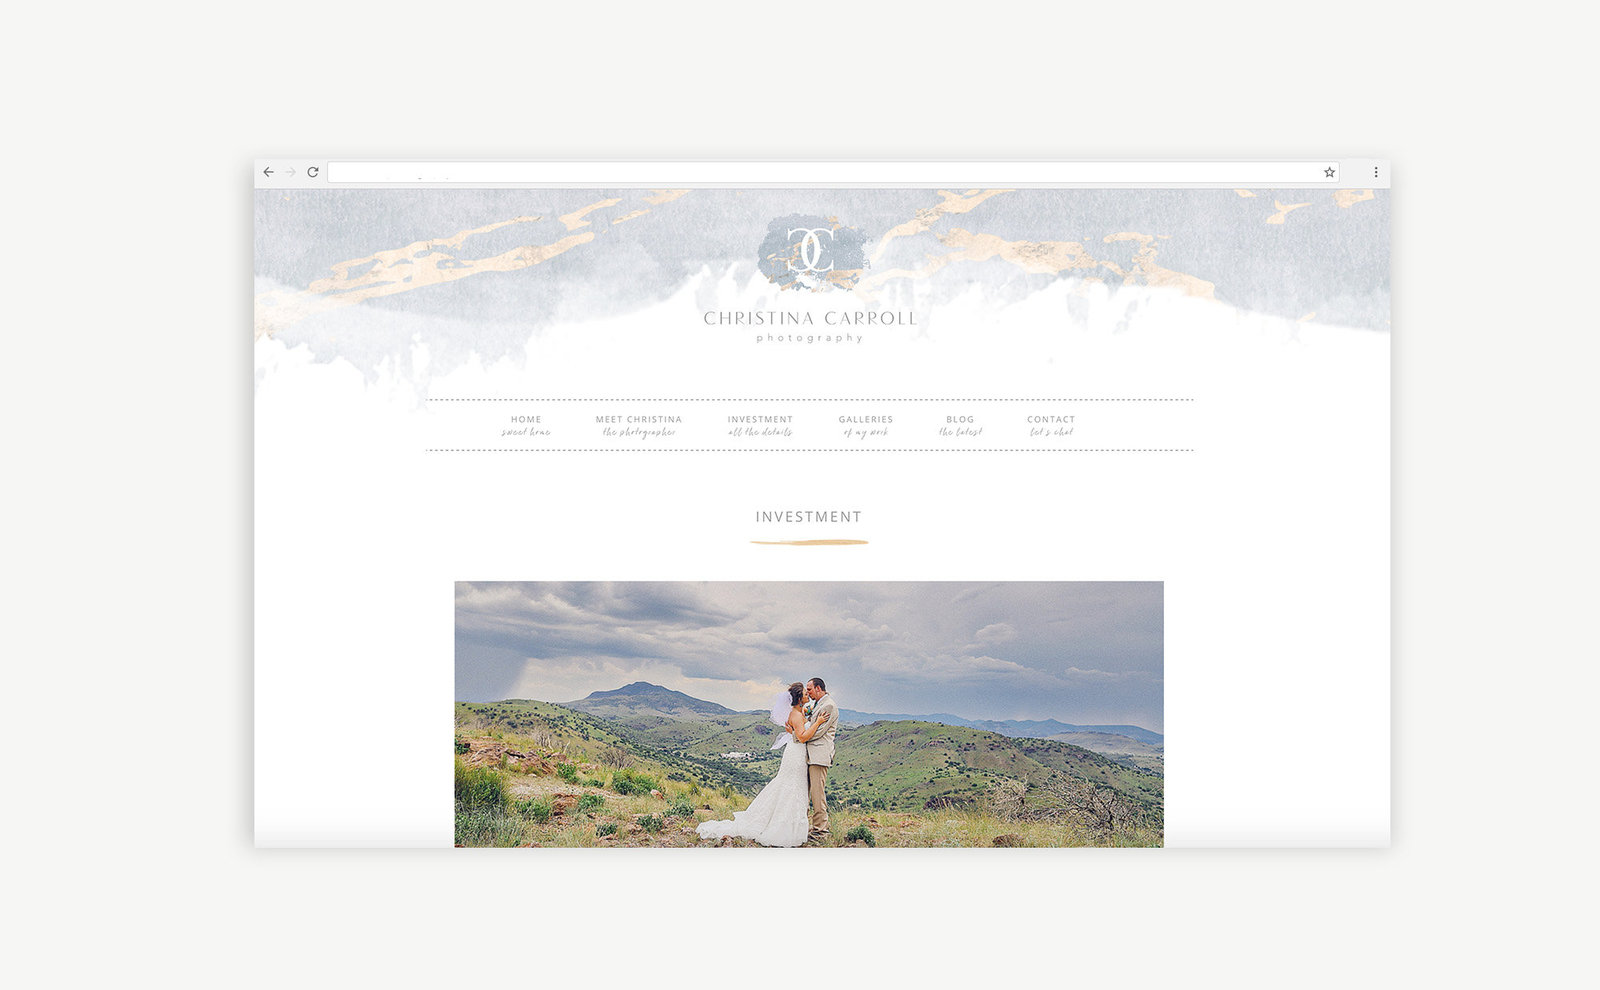 branding-for-photographers-web-design-christina-carroll-03